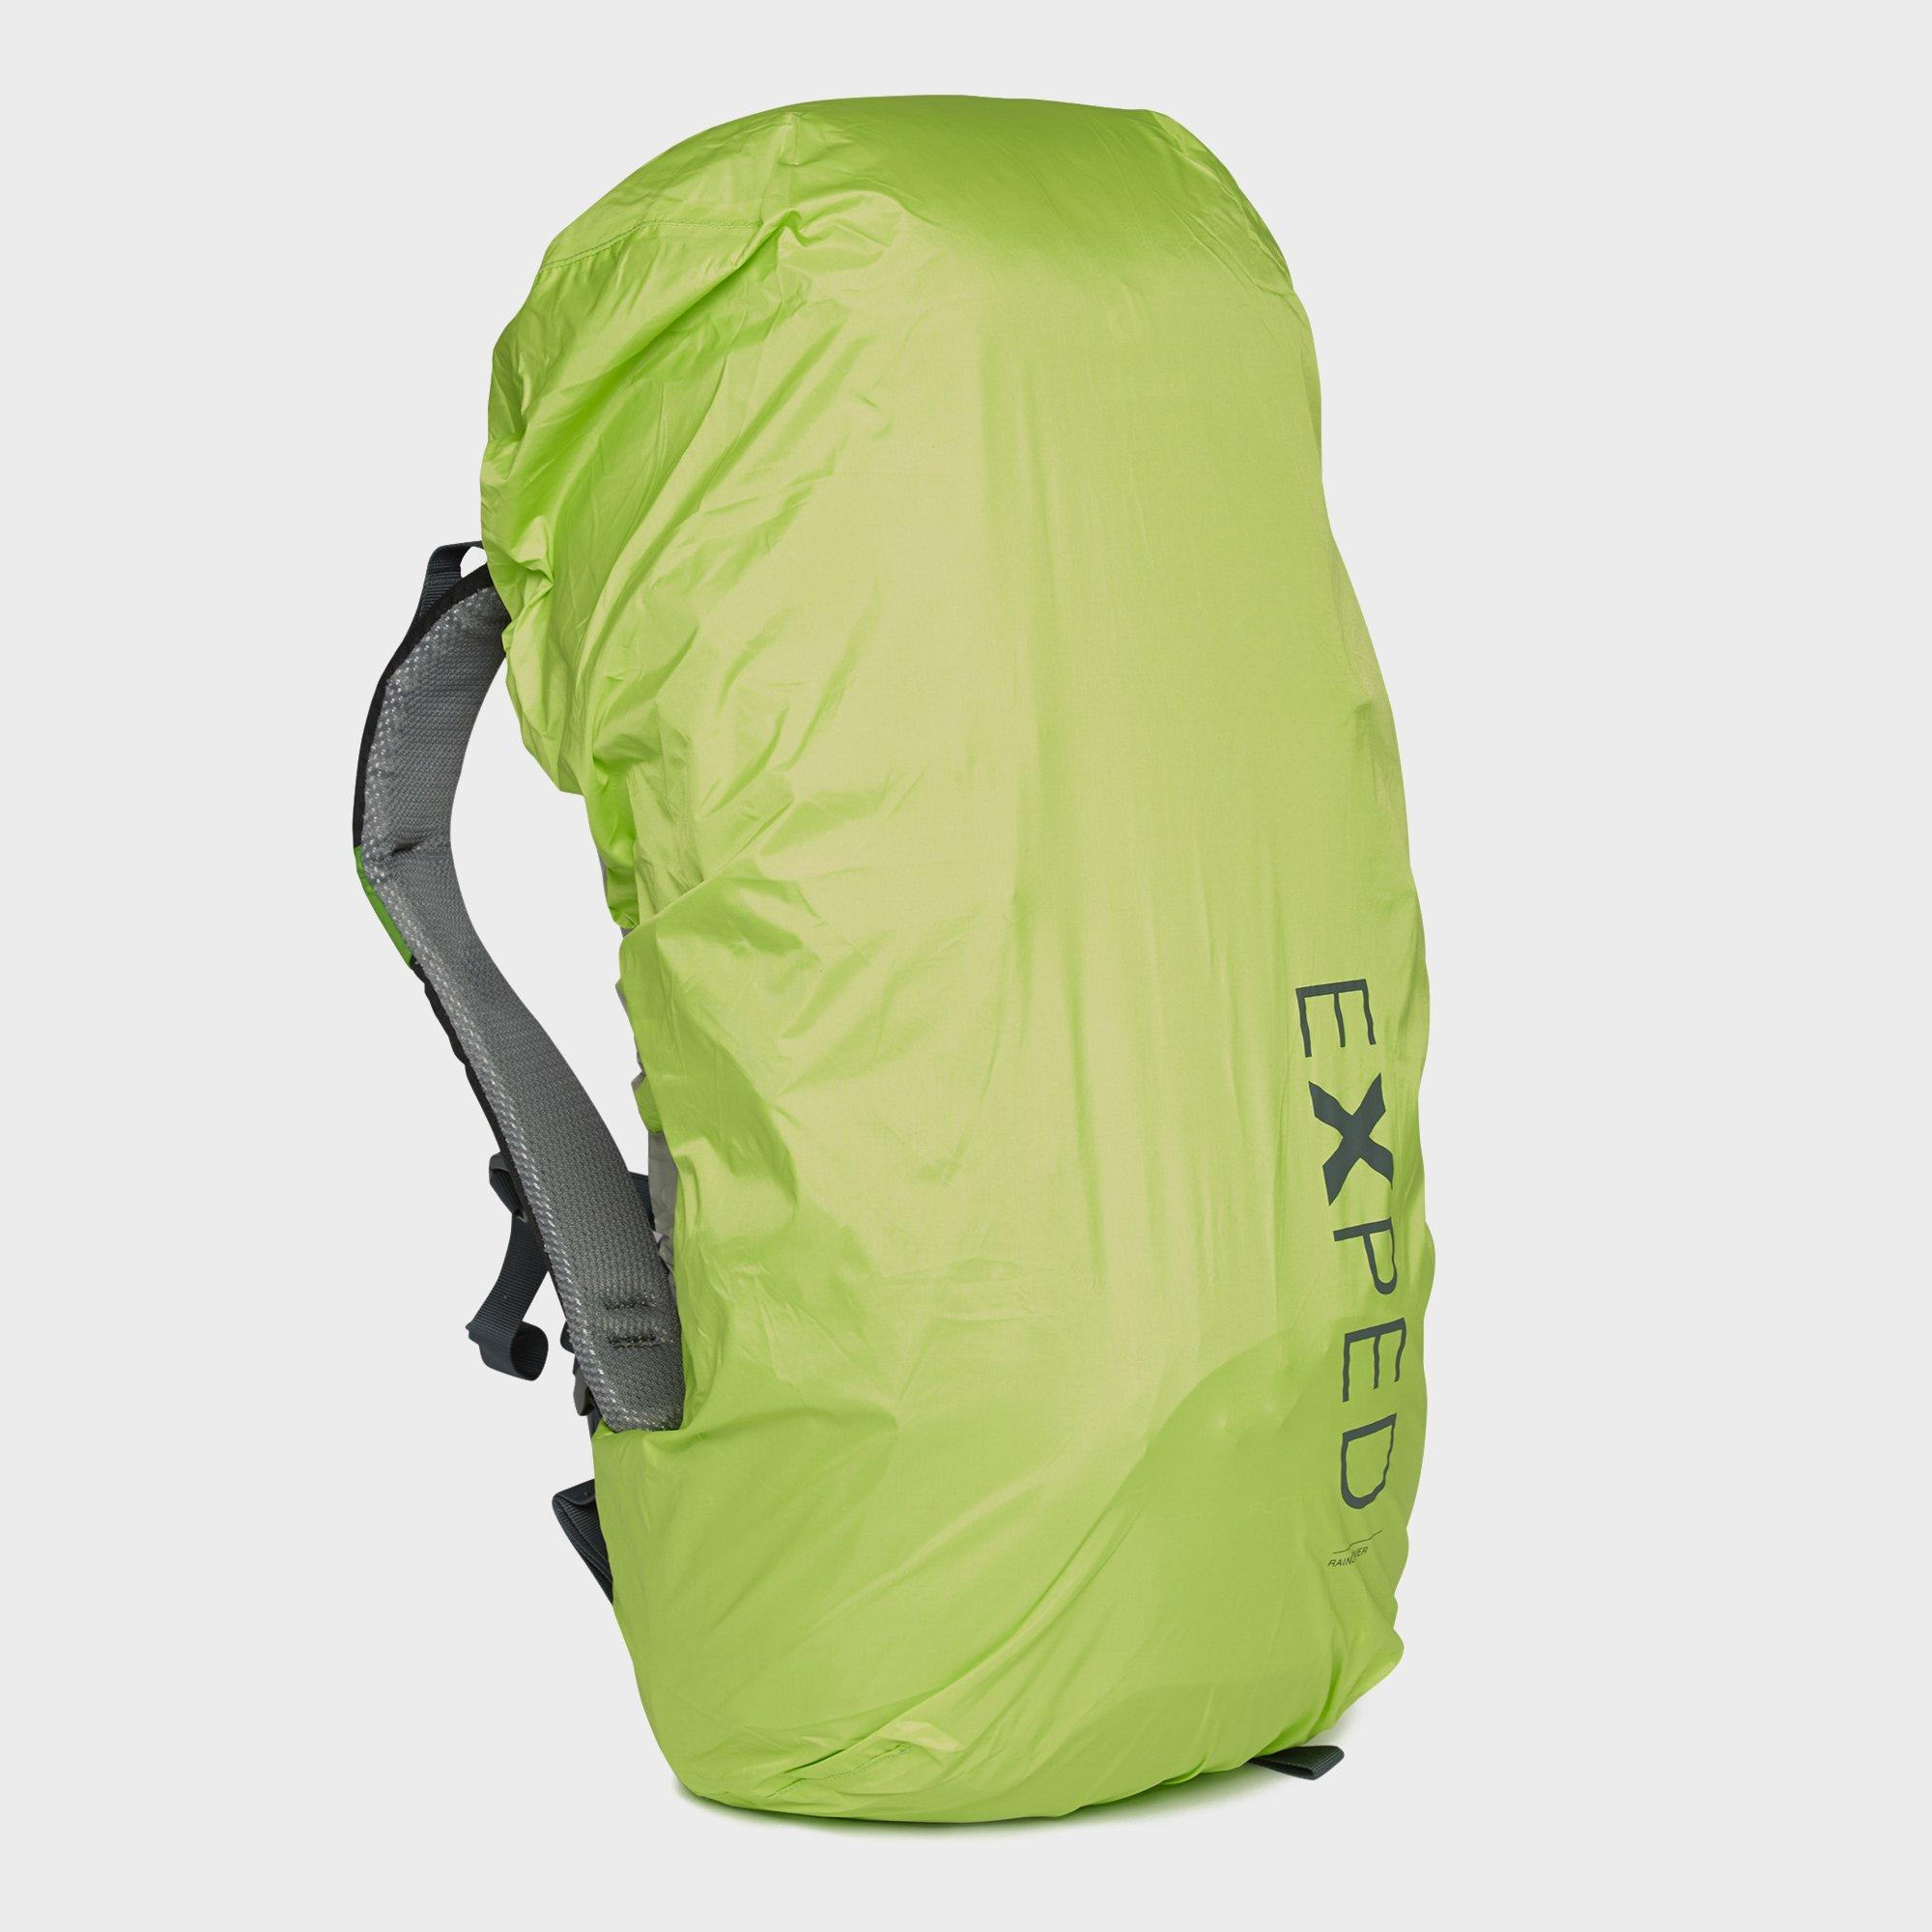 Exped Exped Rain Cover Large (40-60L) - Green, Green